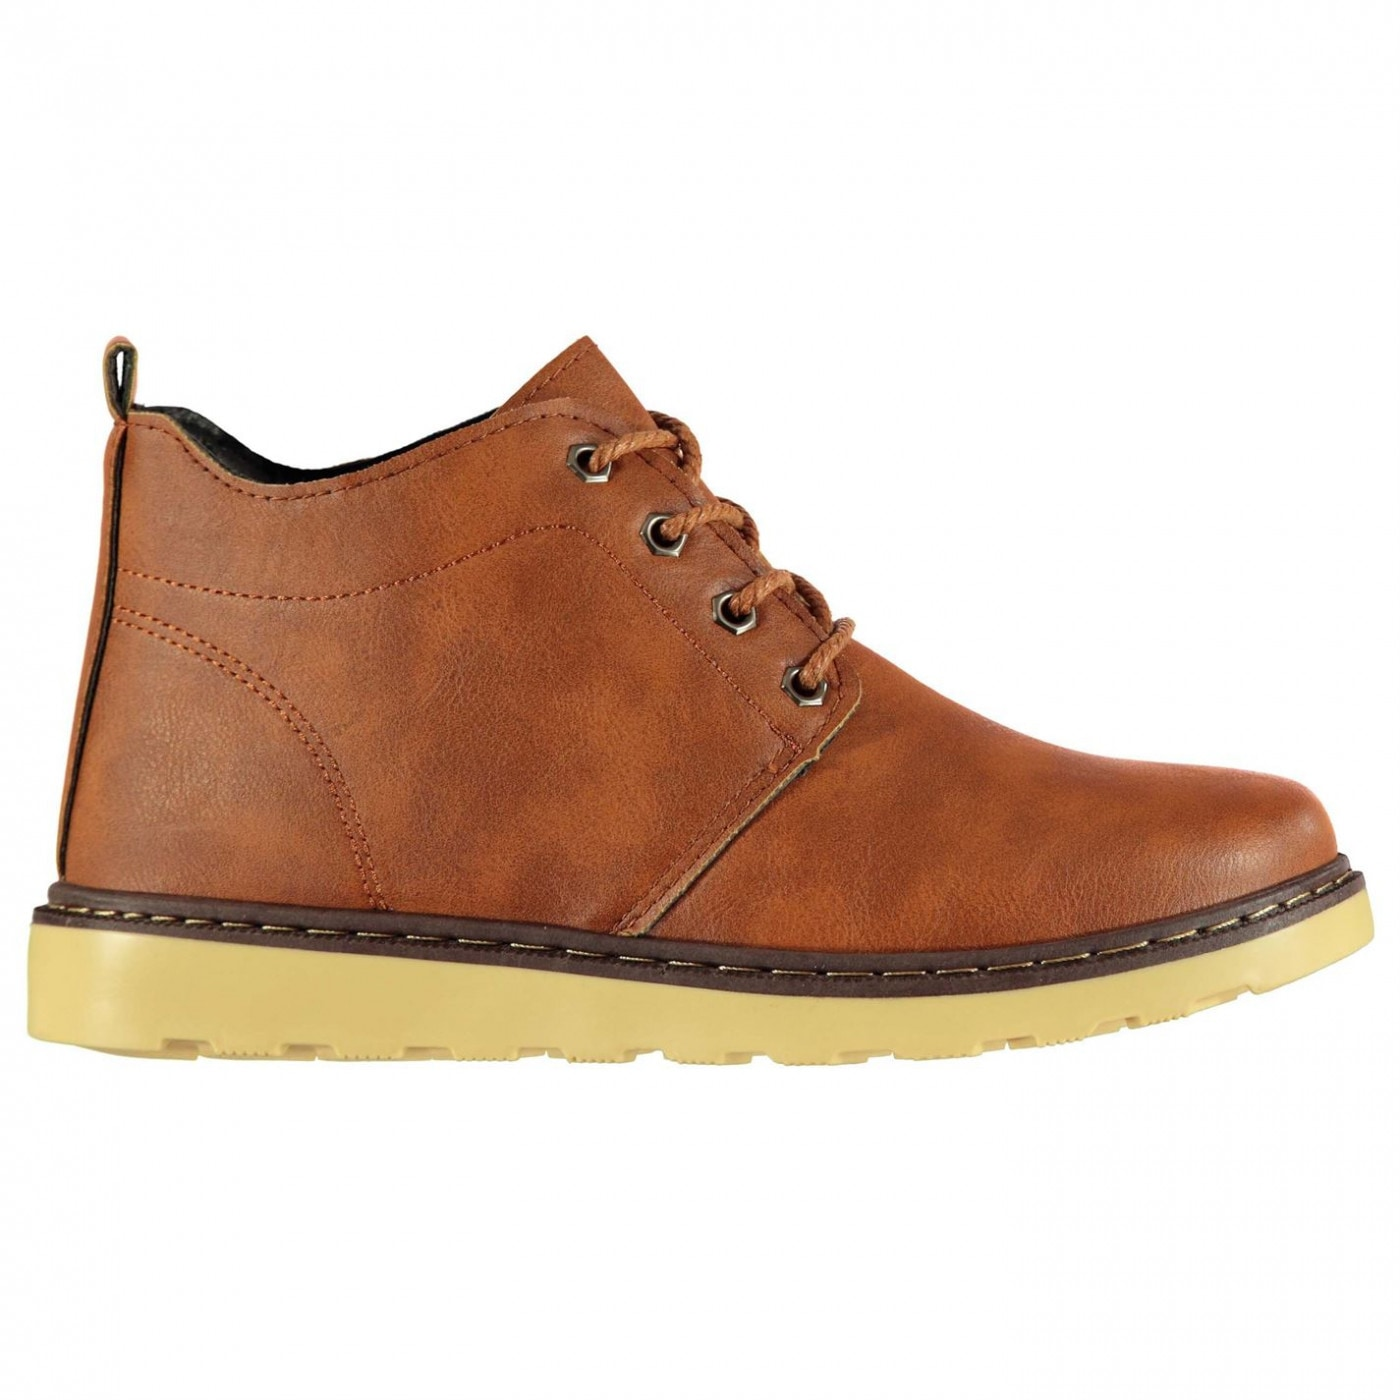 Lee Cooper Riv Boots Mens